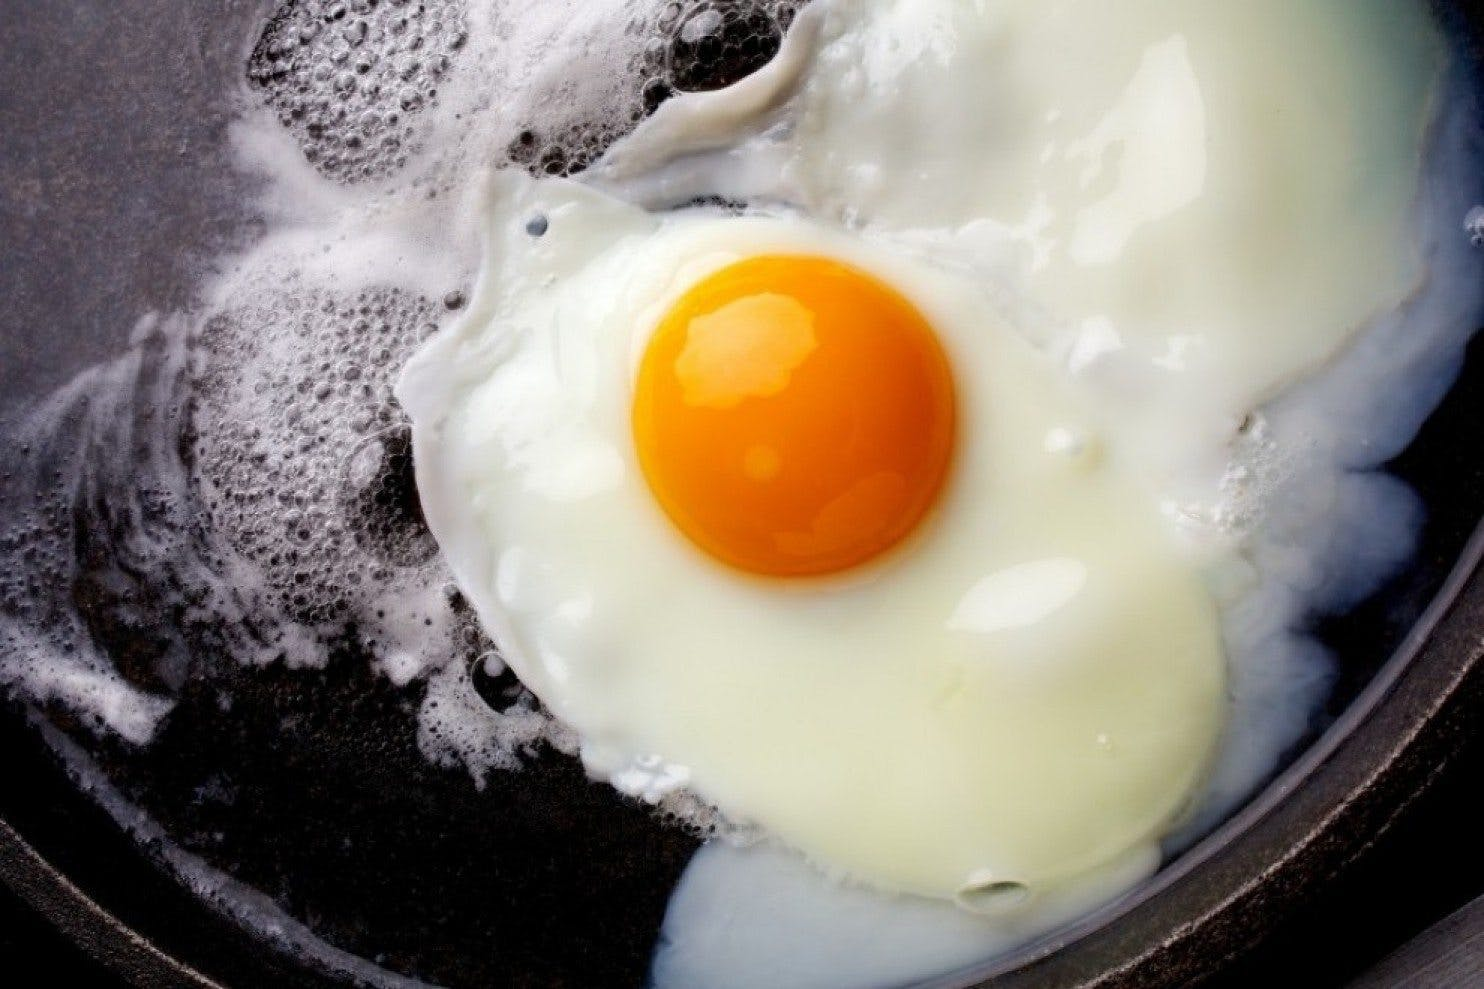 The U.S. Government to Withdraw Warnings About Cholesterol